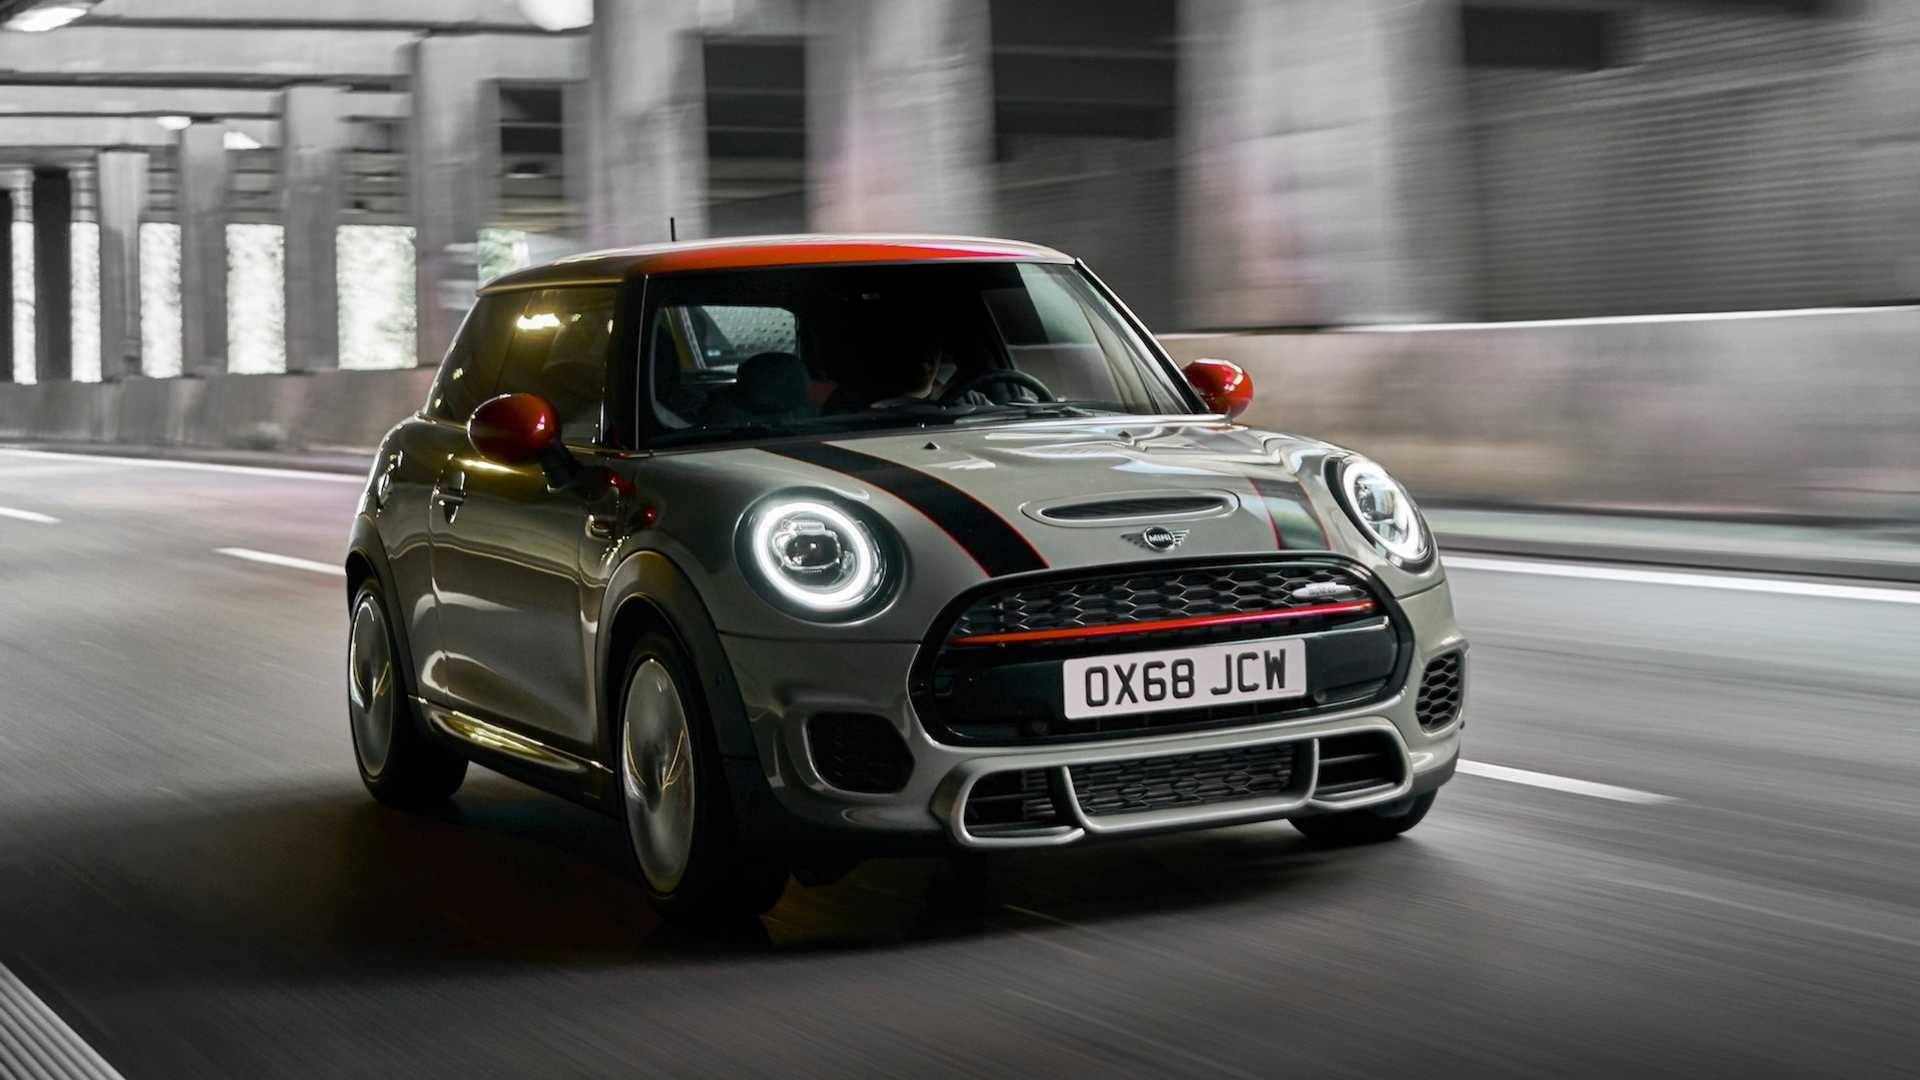 92 Concept of 2019 Mini Jcw Overview for 2019 Mini Jcw